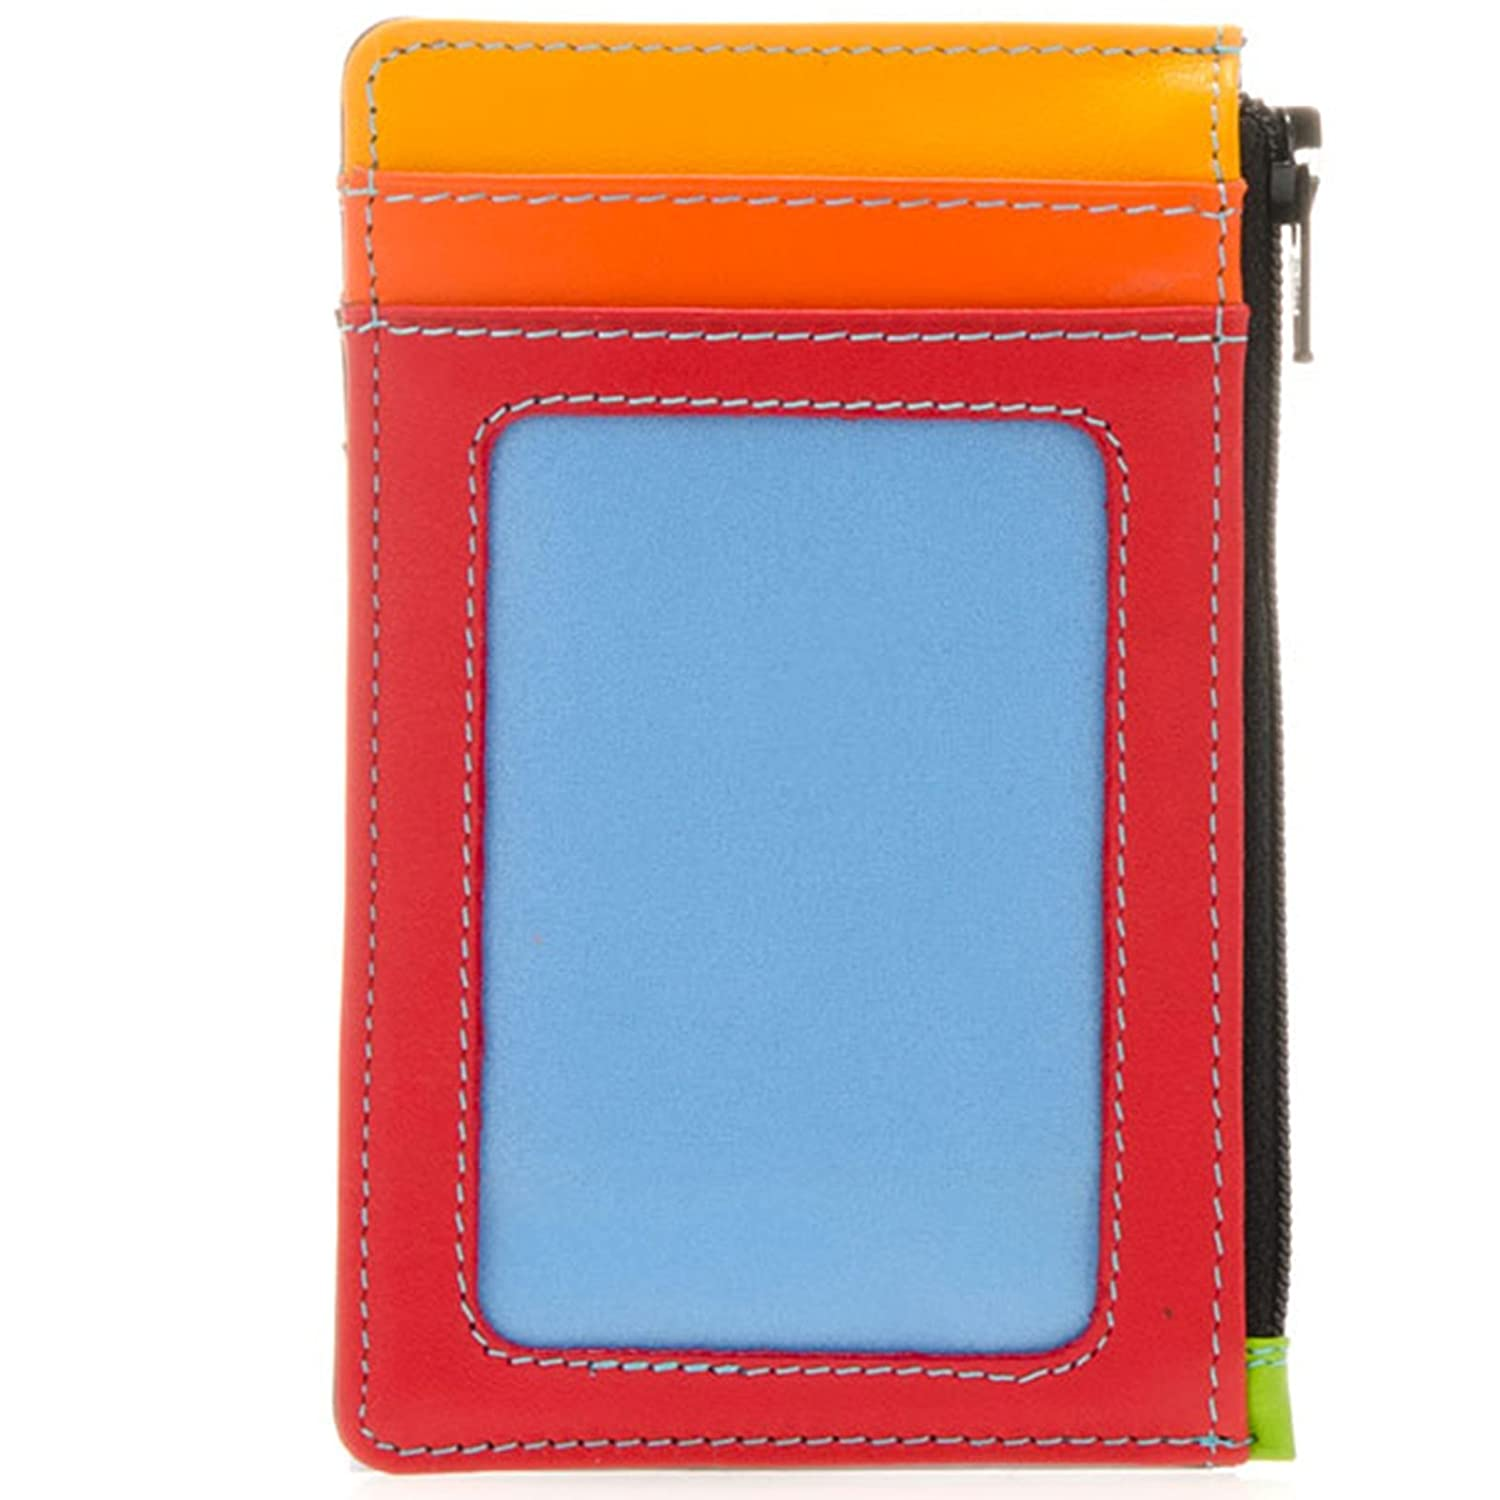 Mywalit Leather Credit Card Holder with Coin Purse 1206